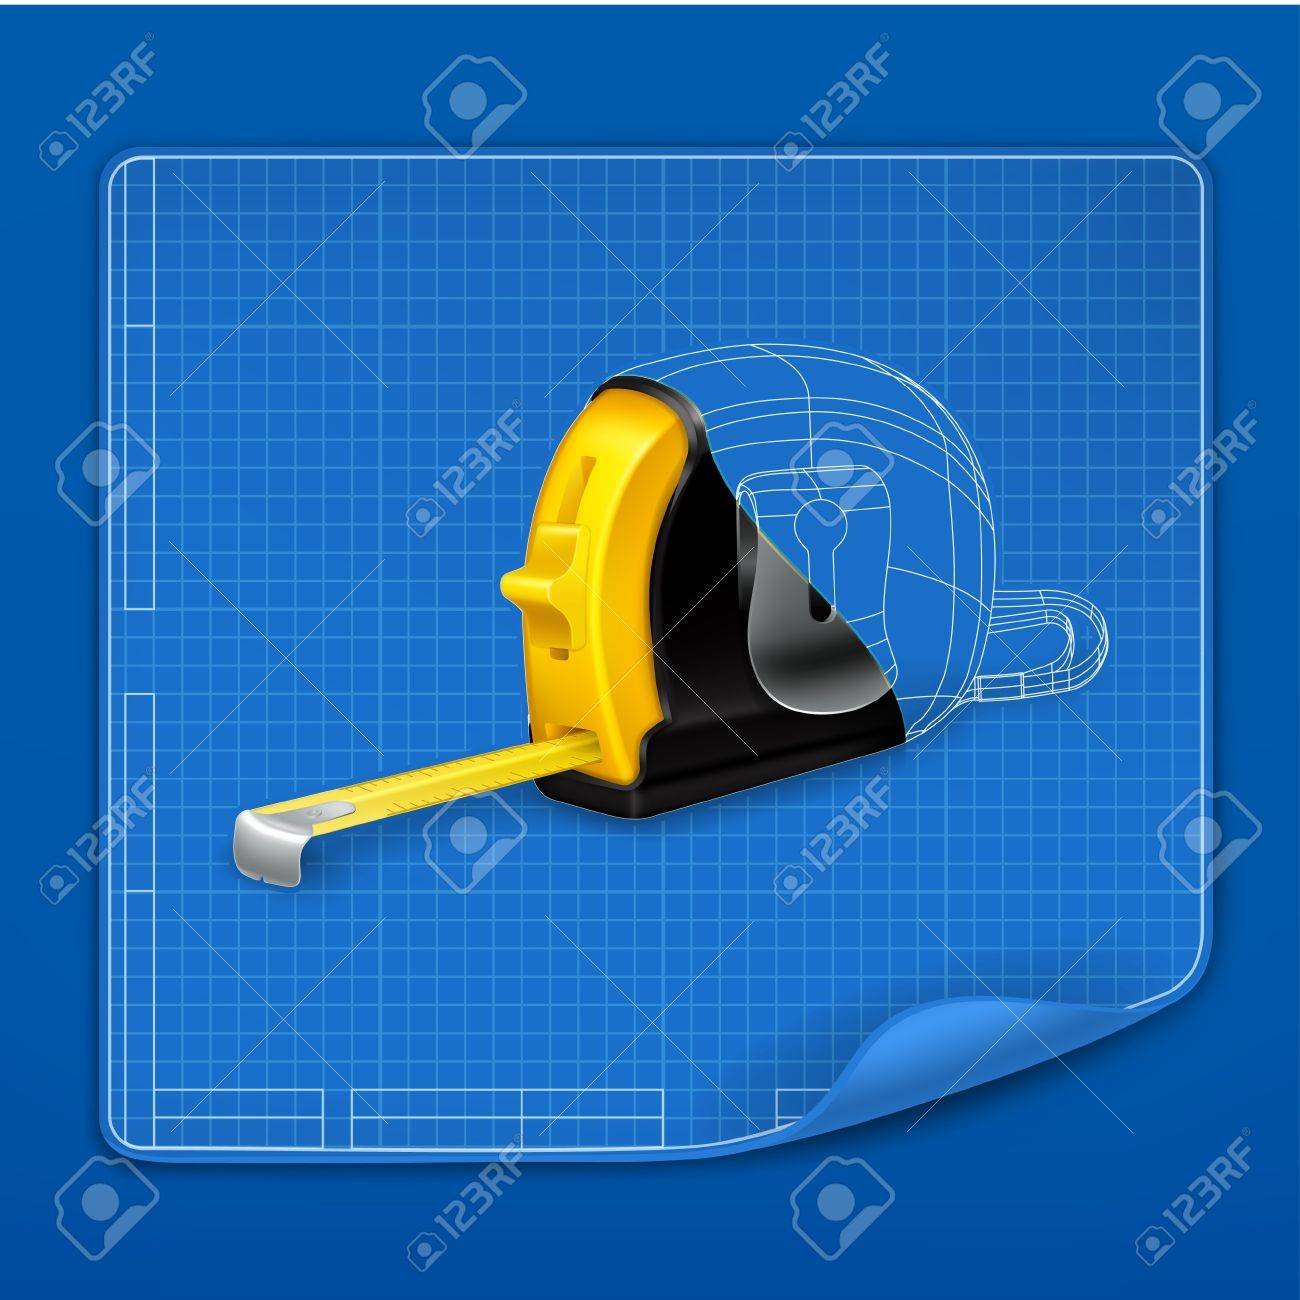 Tape measure drawing blueprint Stock Vector - 14277269